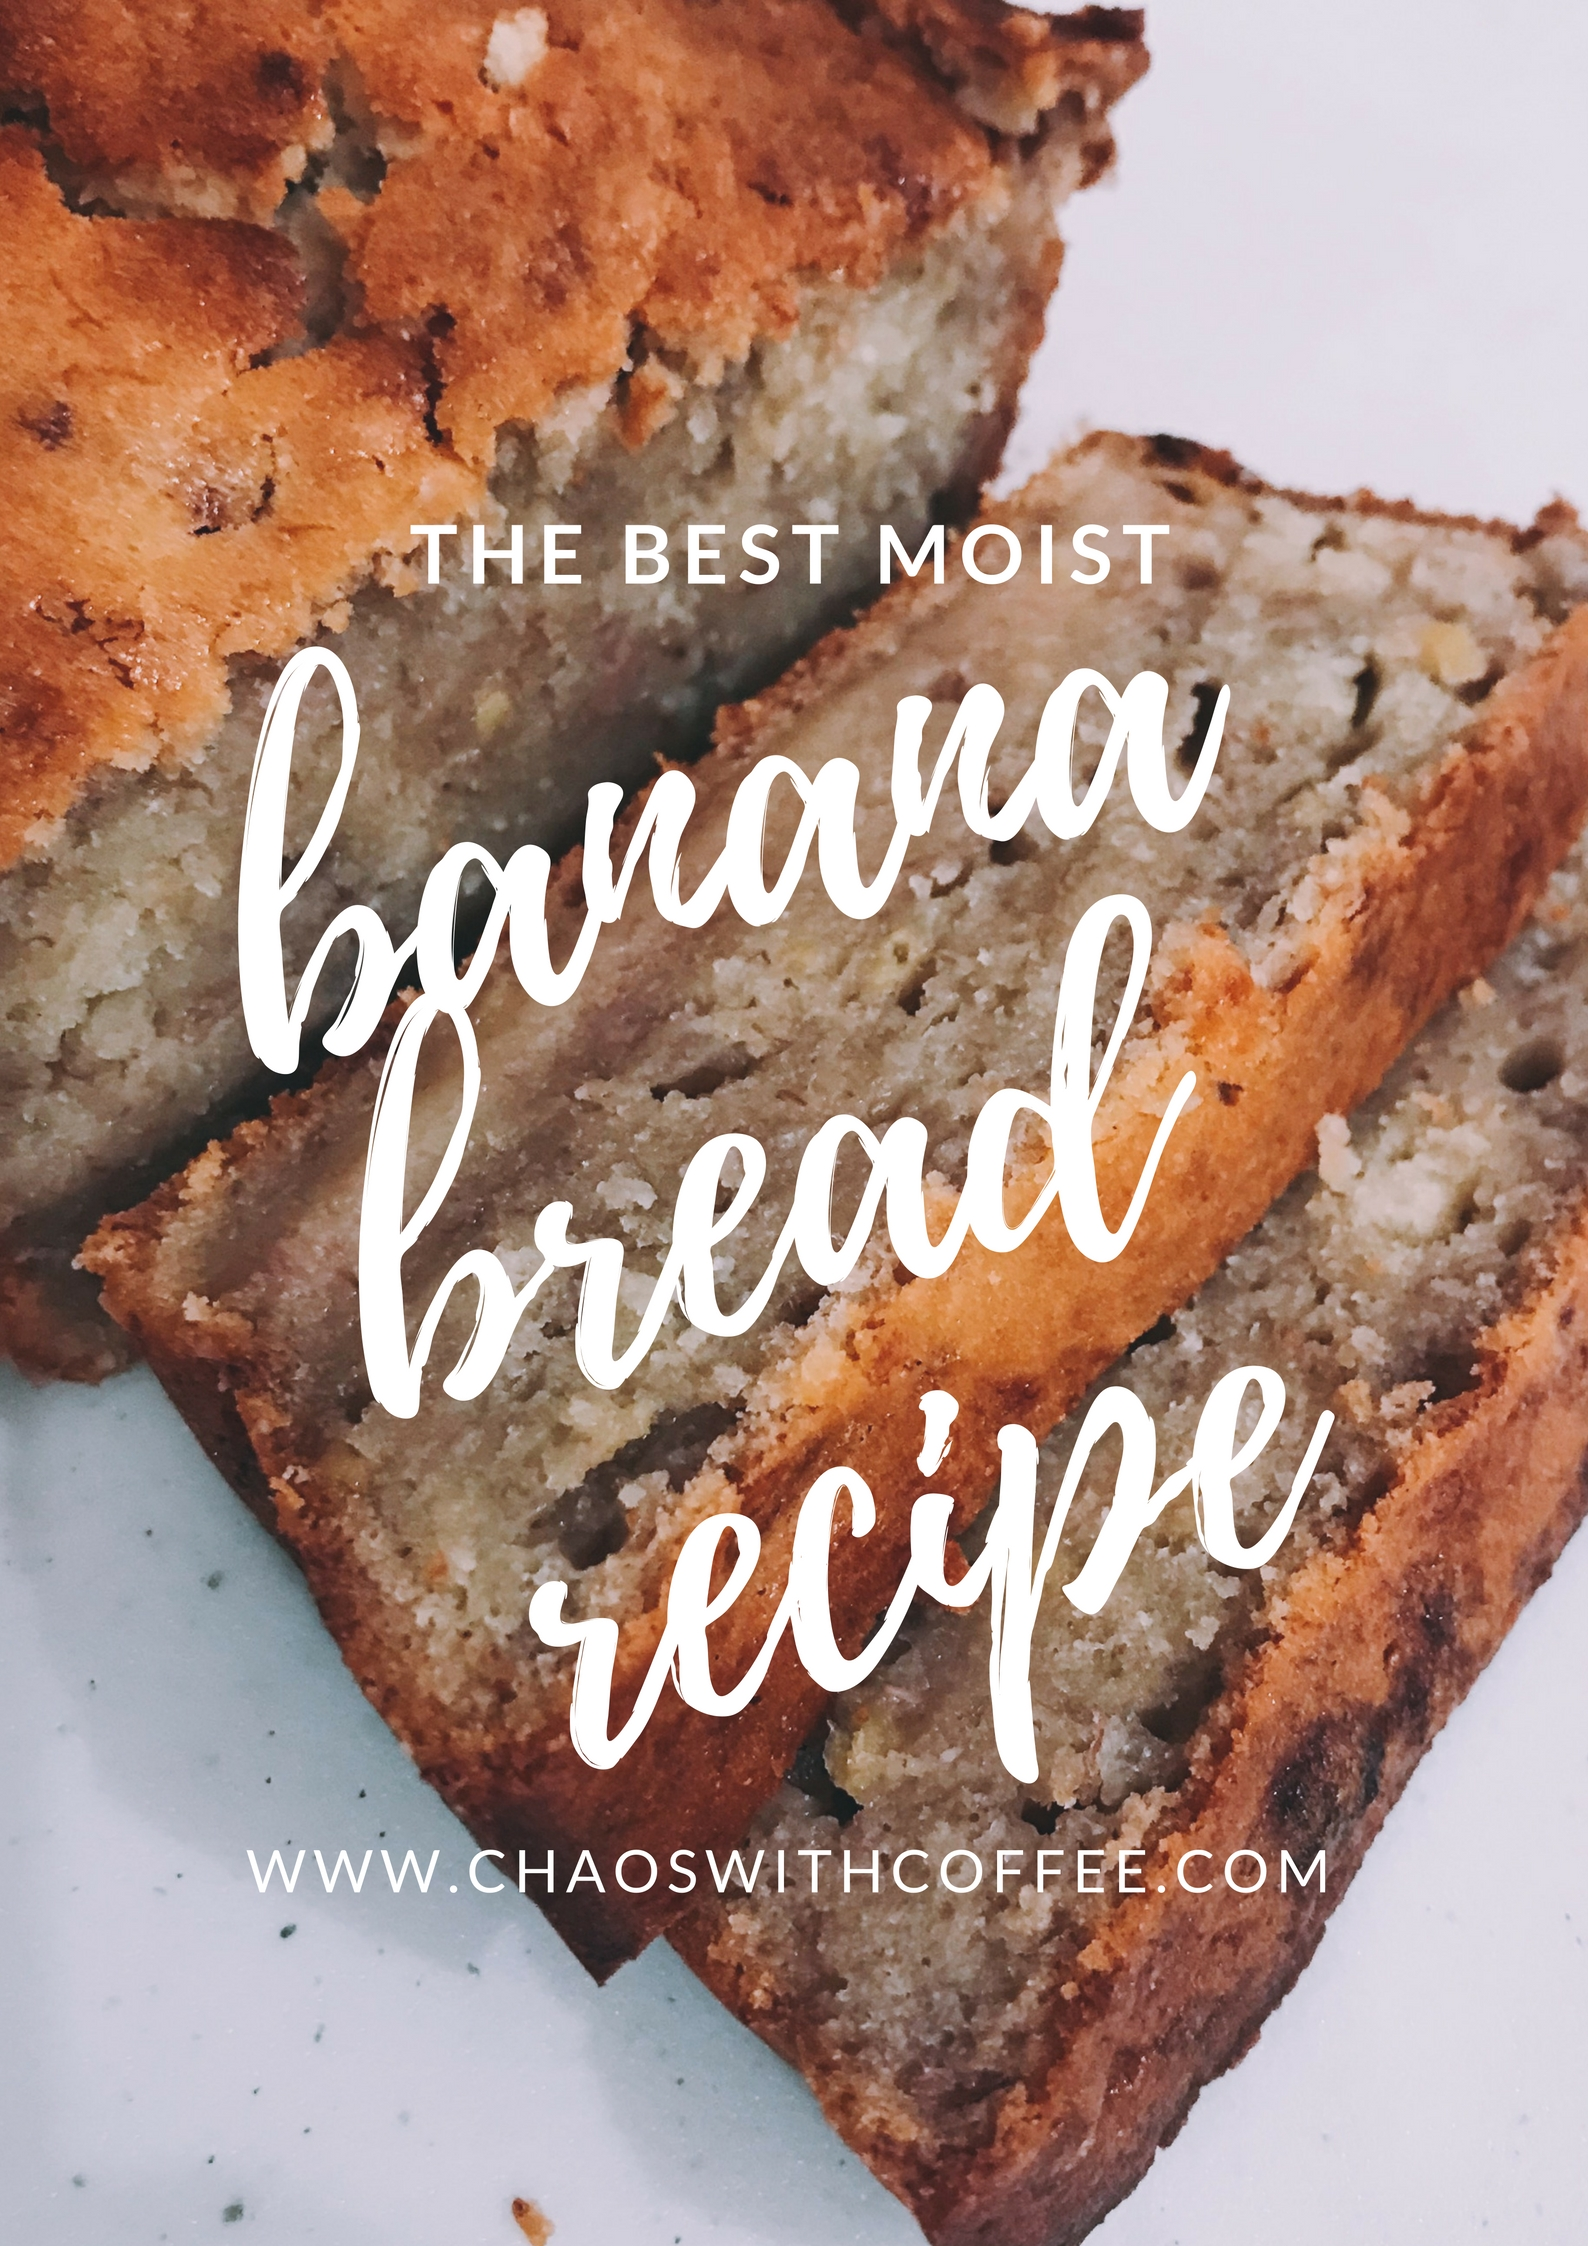 The Best Banana Bread Recipe via Chaos With Coffee